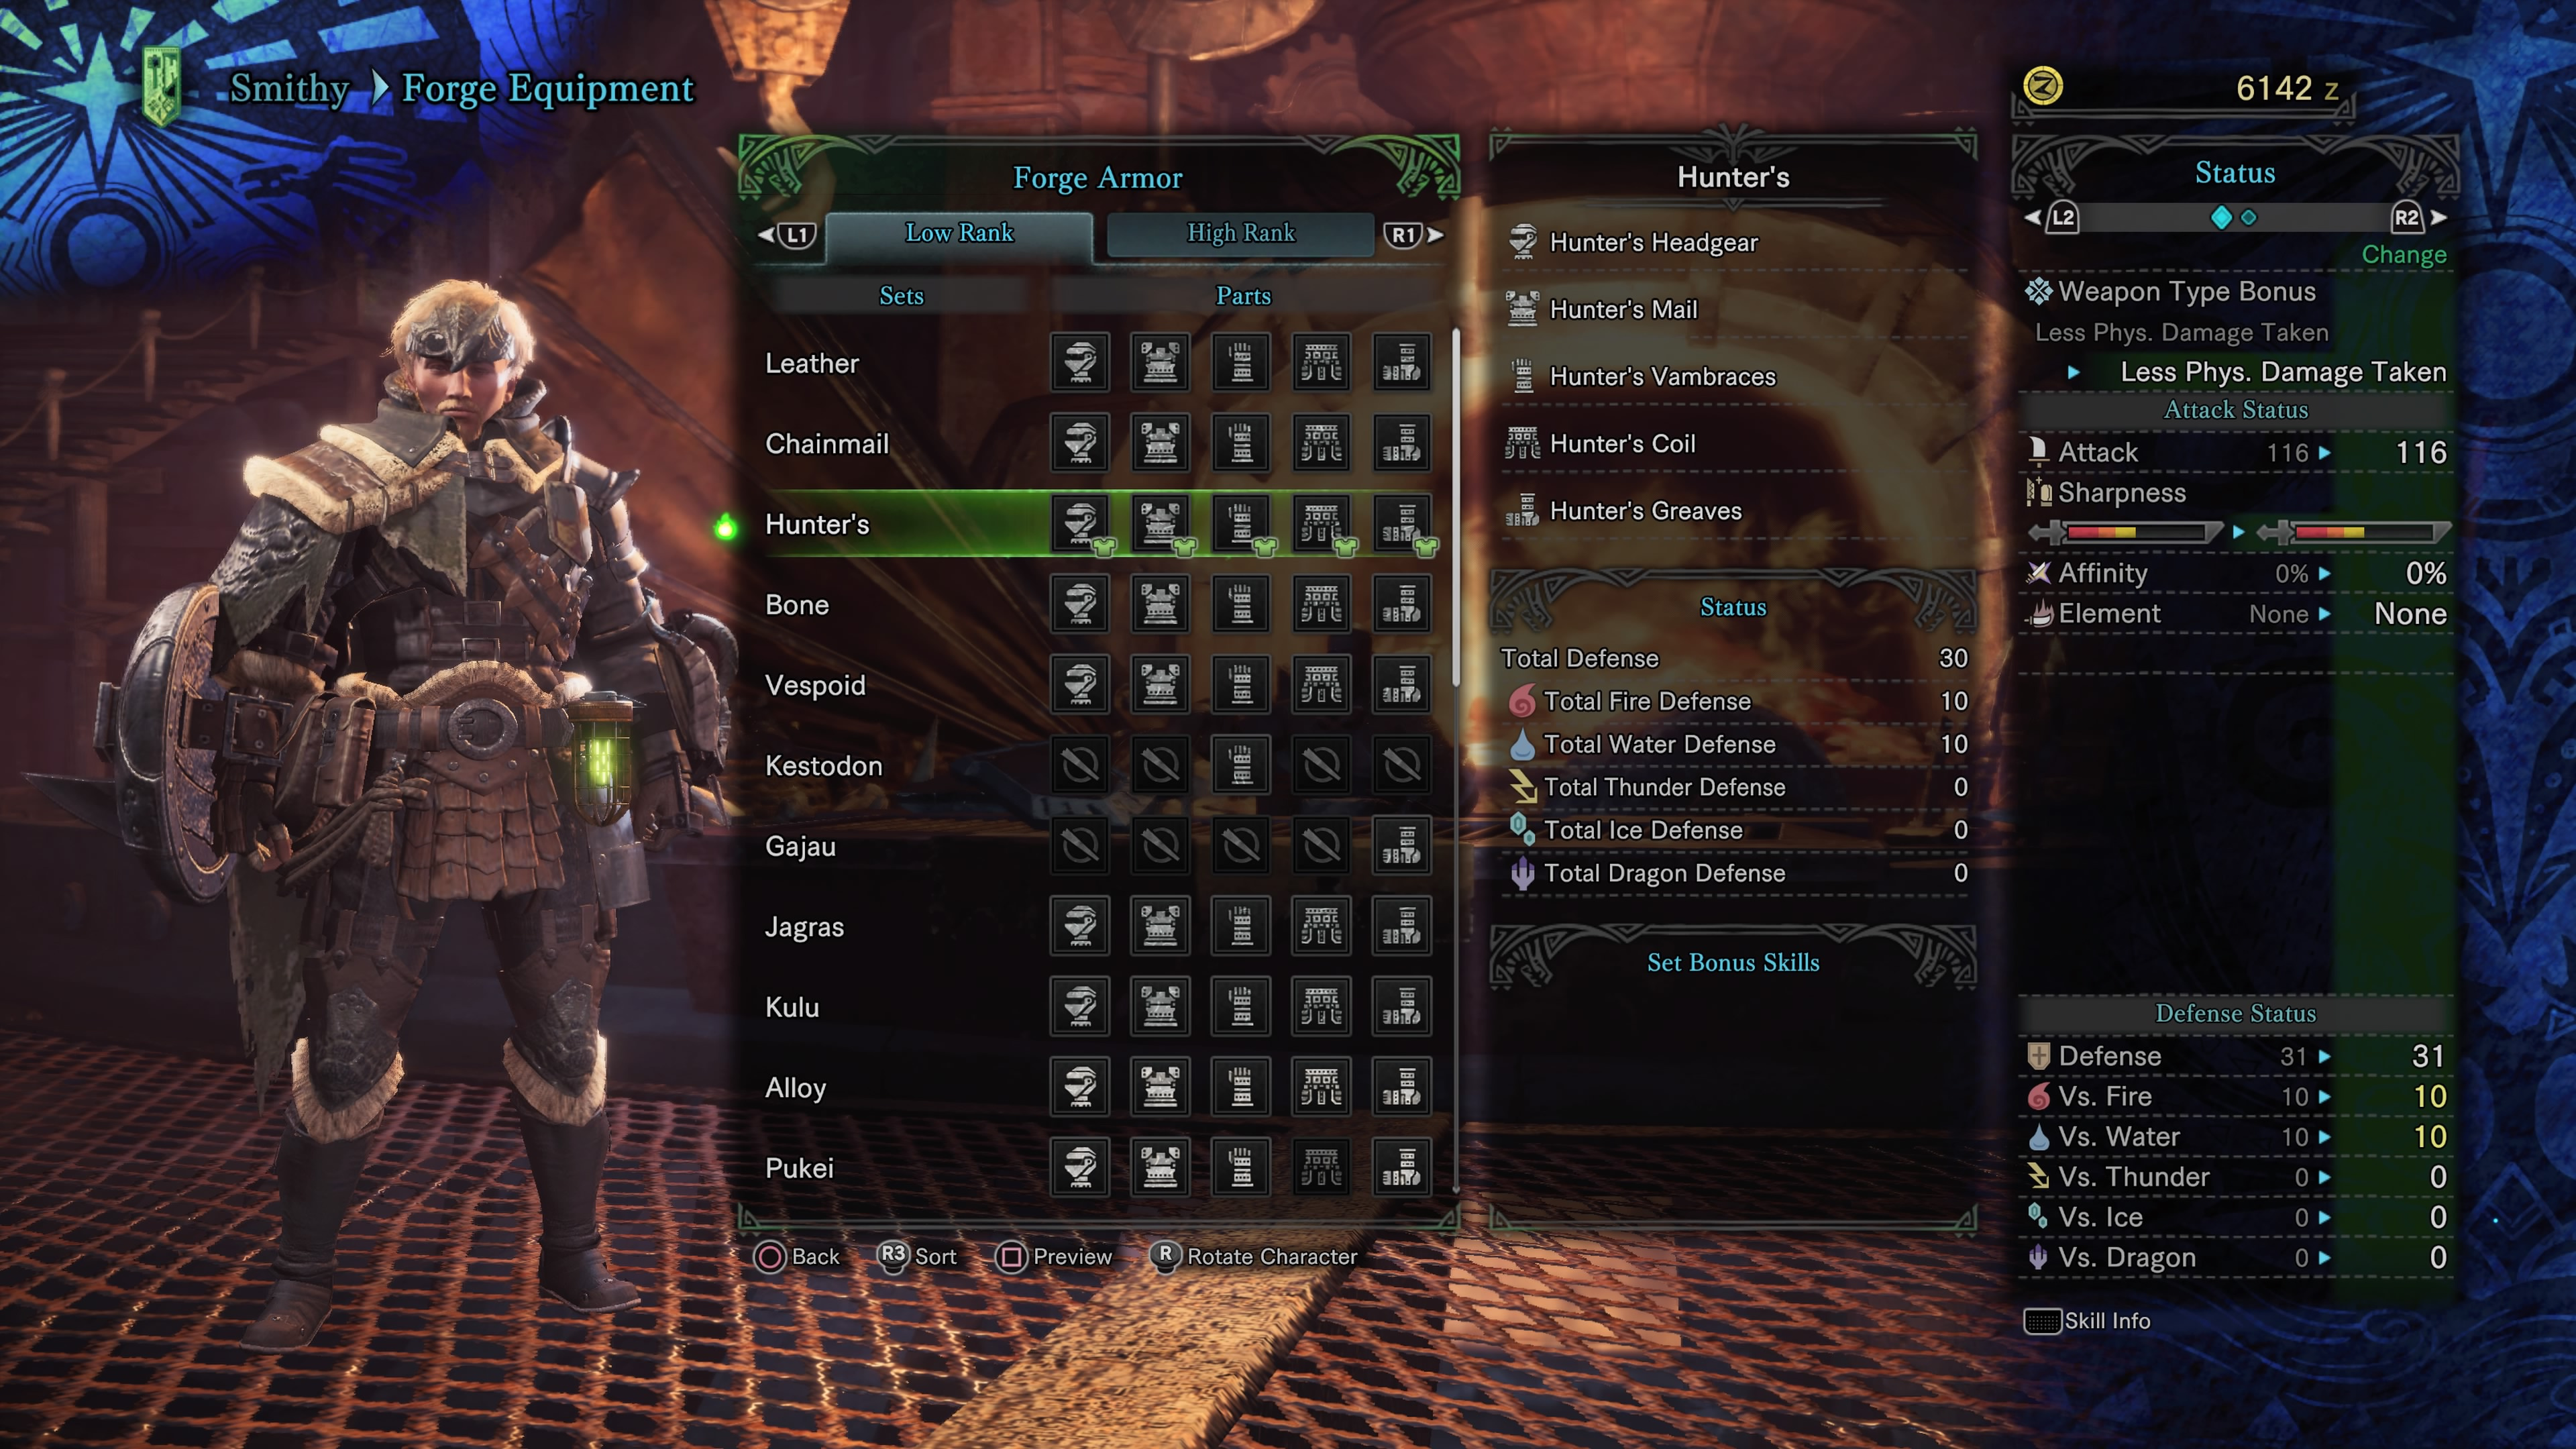 Monster Hunter: World Armor Sets - All Low Rank Armor Sets and How